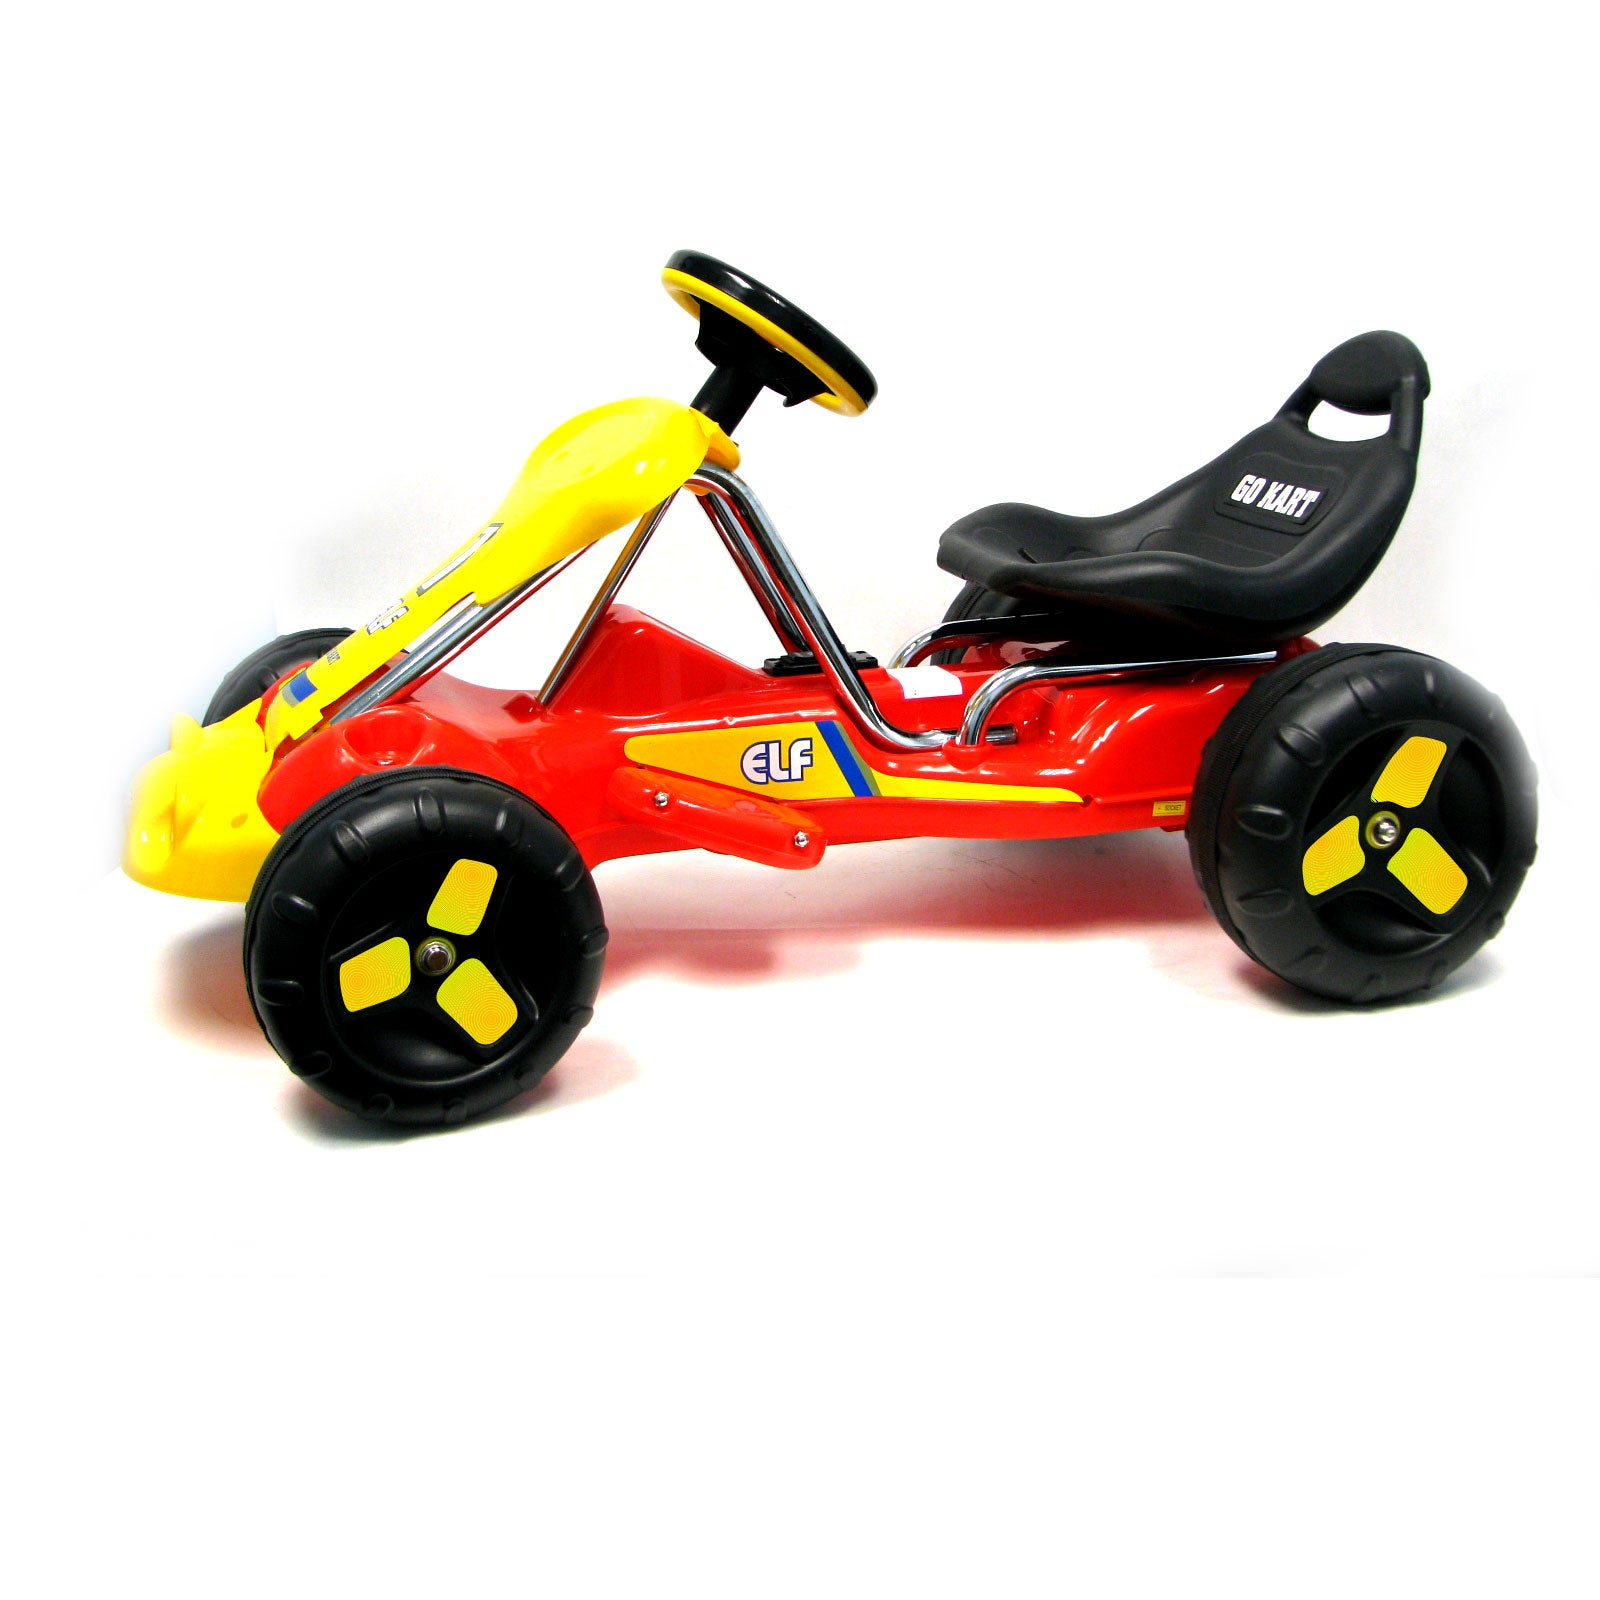 Red Elf Rider Battery Operated Child's Go-Kart